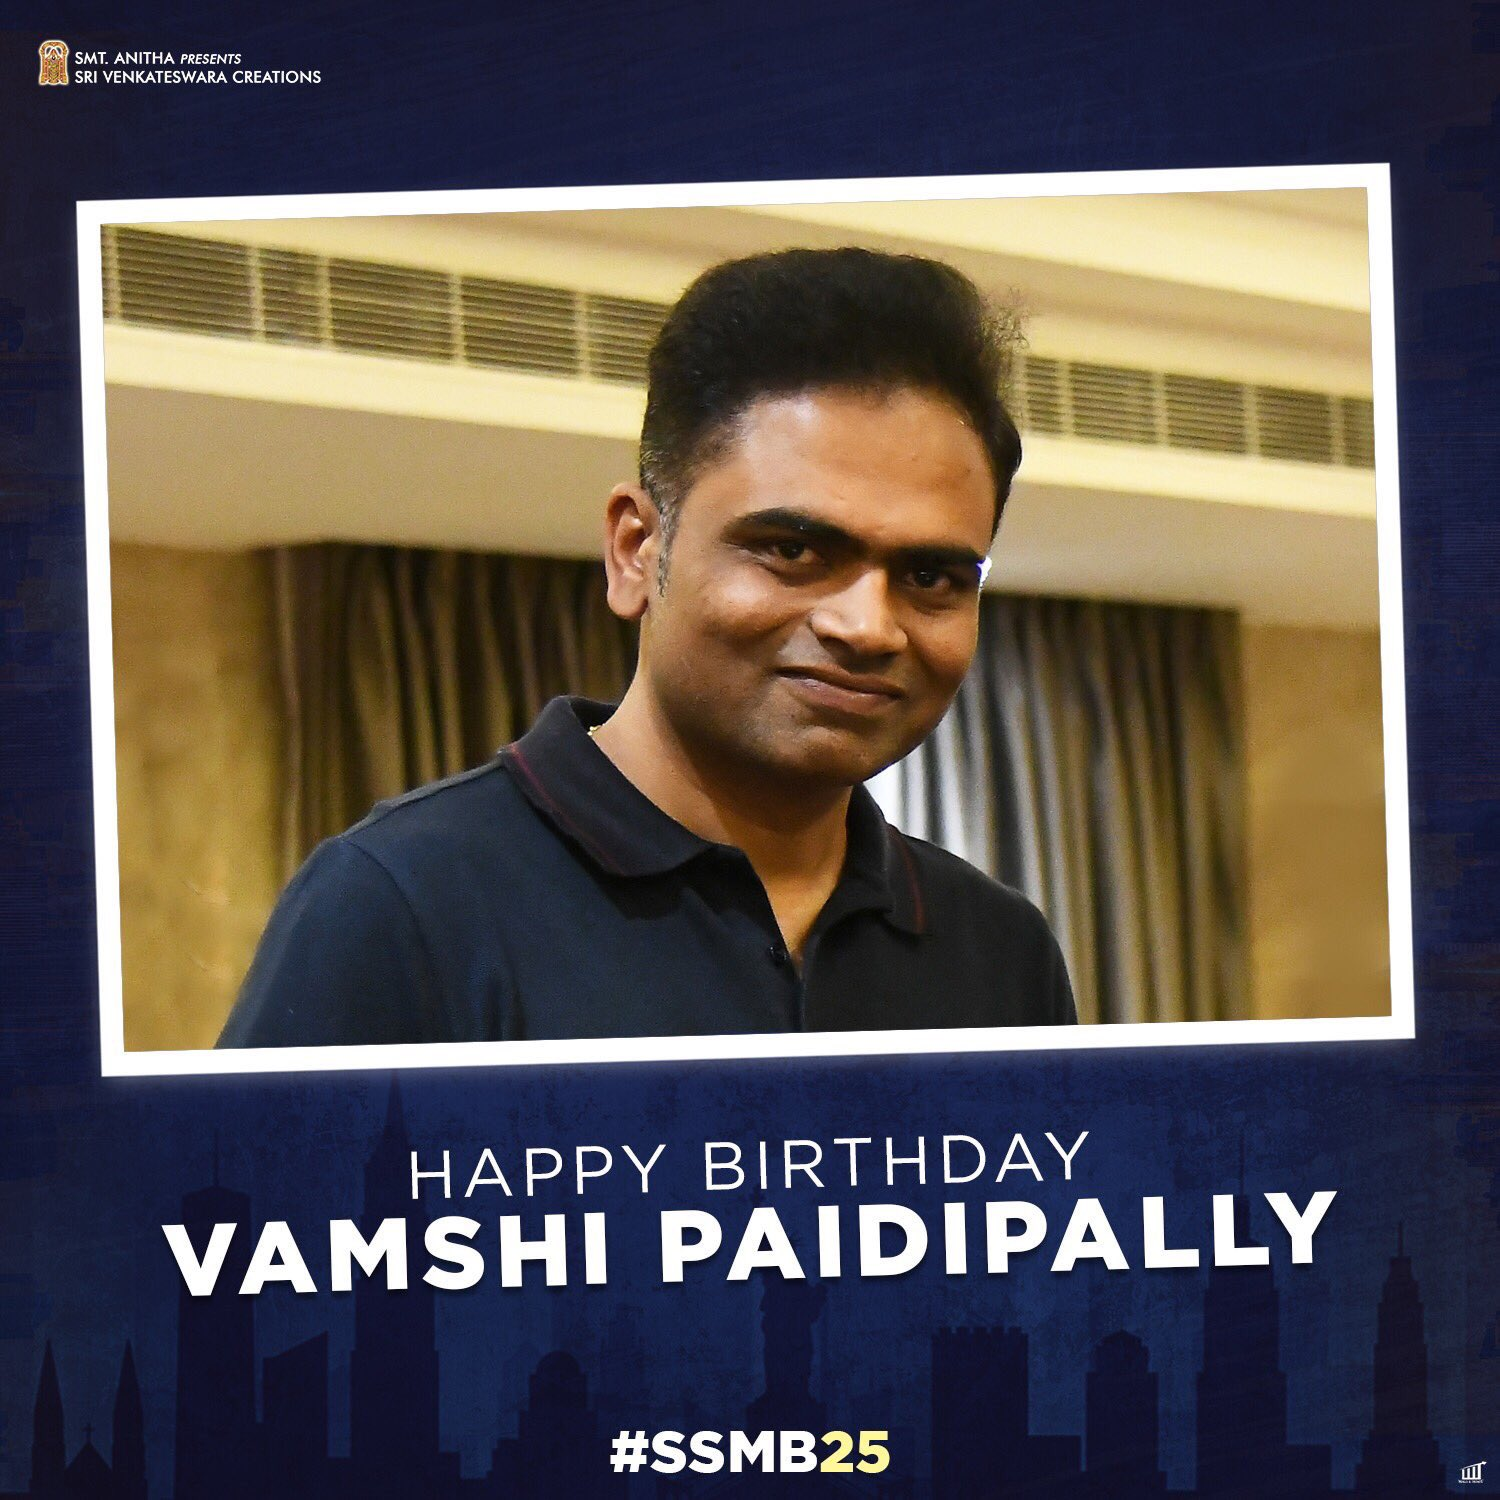 Birthday Wishes to Leading Director @directorvamshi #Mahesh25 #MB25 https://t.co/4VxPLfG9xt